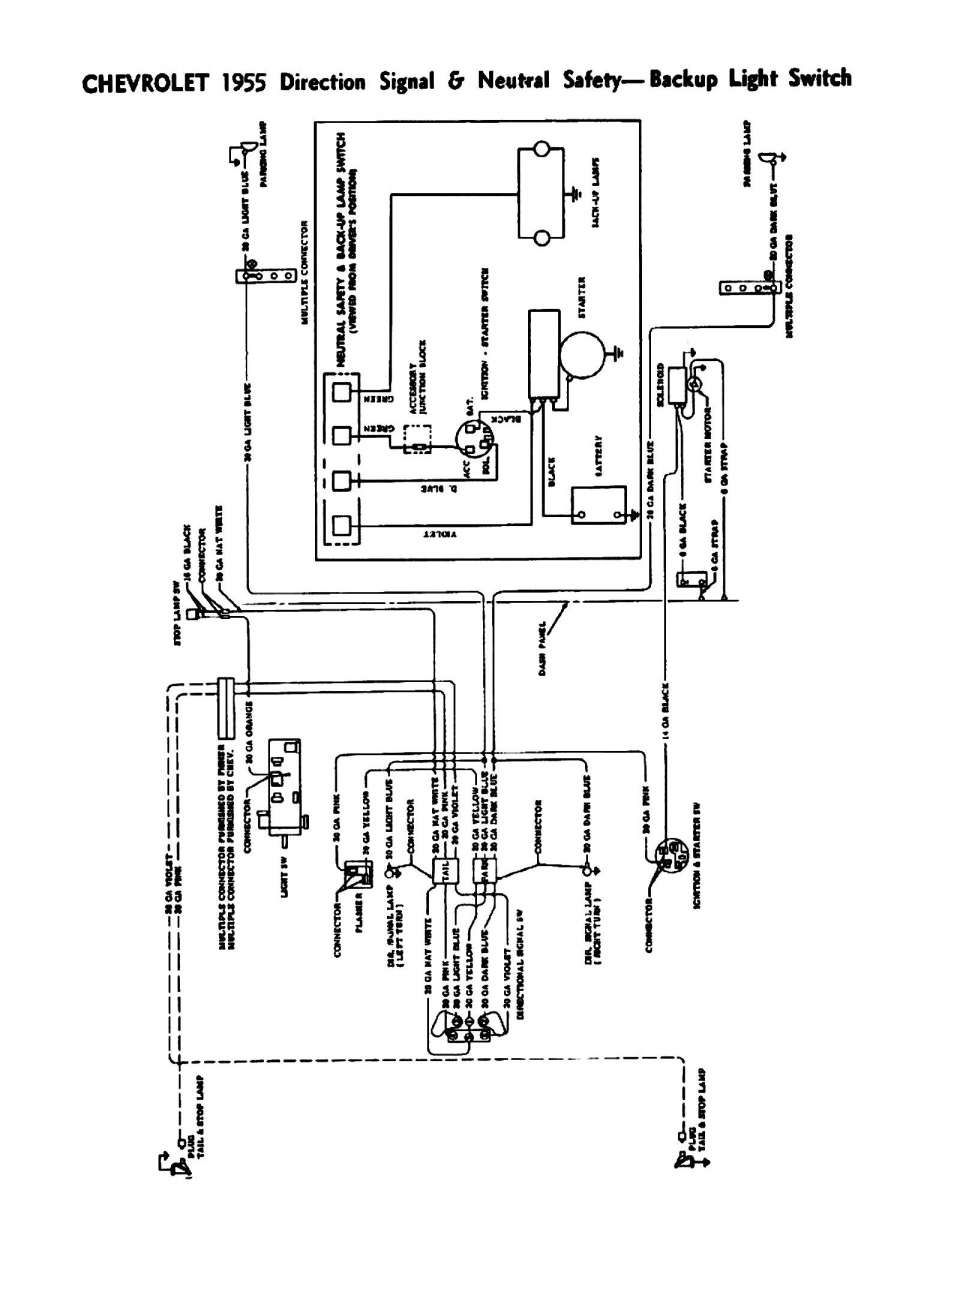 truck ignition wiring diagram | local wiring diagrams student  skialproncone.it